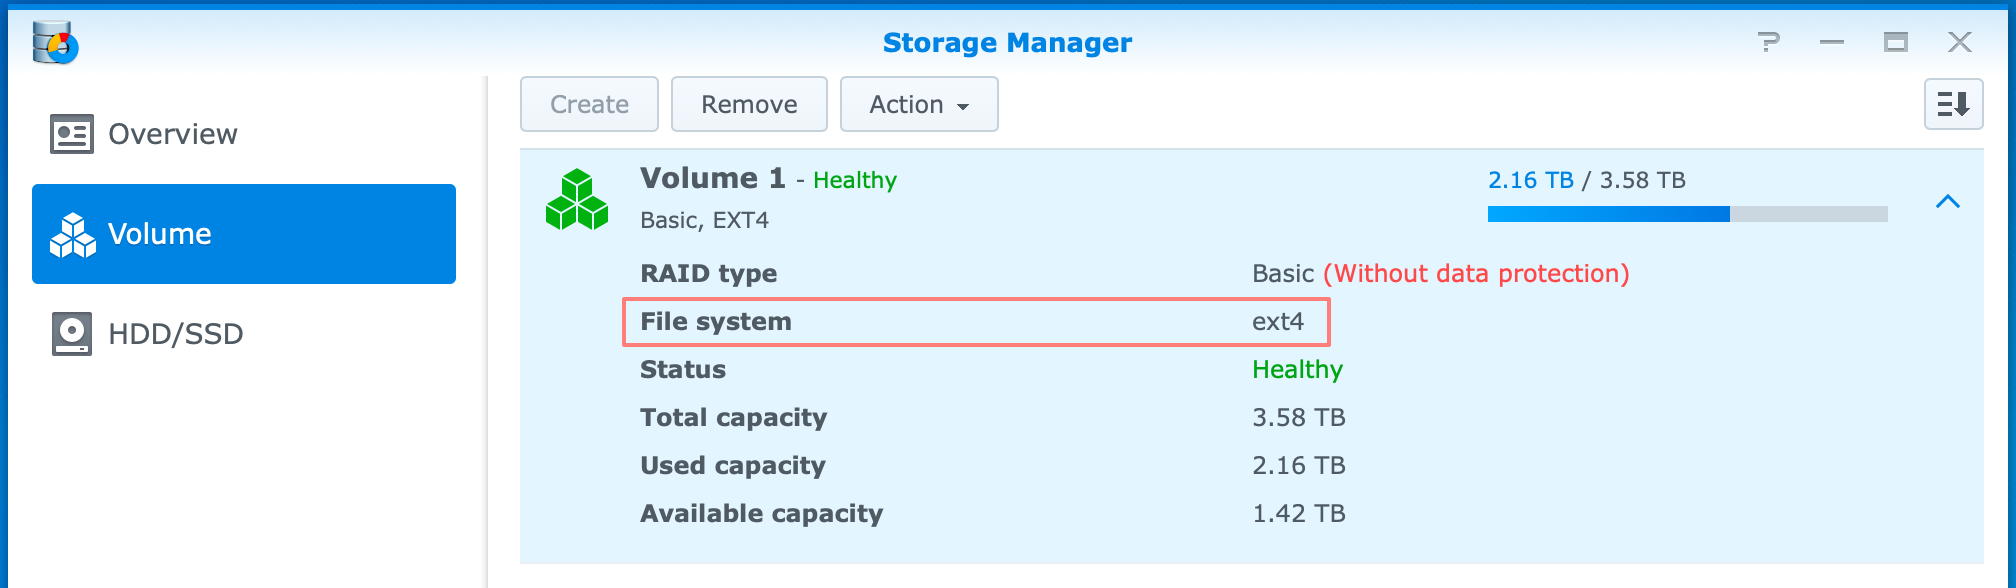 synology, storage manager, ext4